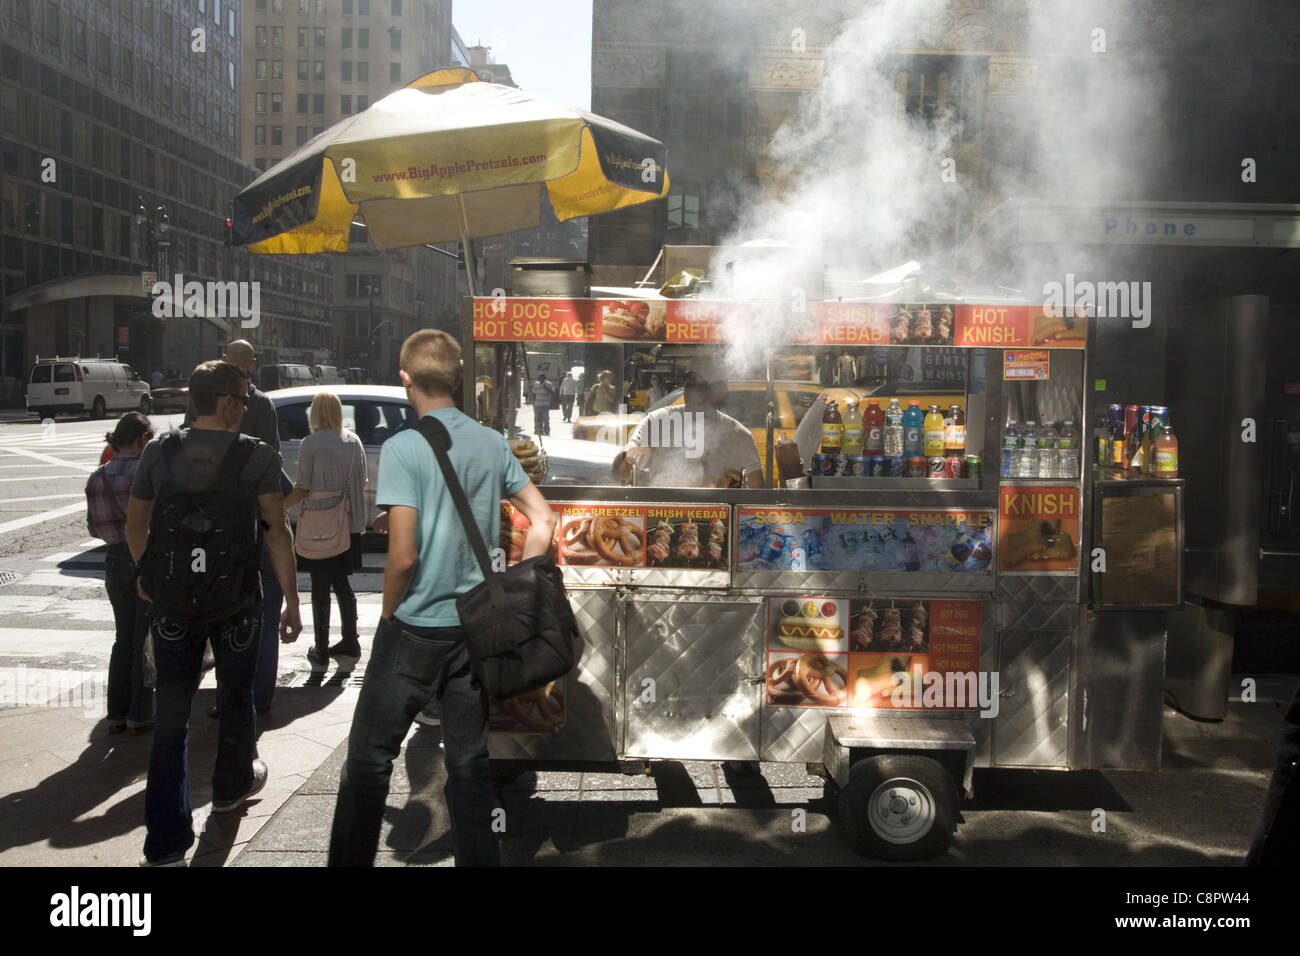 Food vendor cooks on the street in midtown Manhattan and pollutes the environment around him. - Stock Image